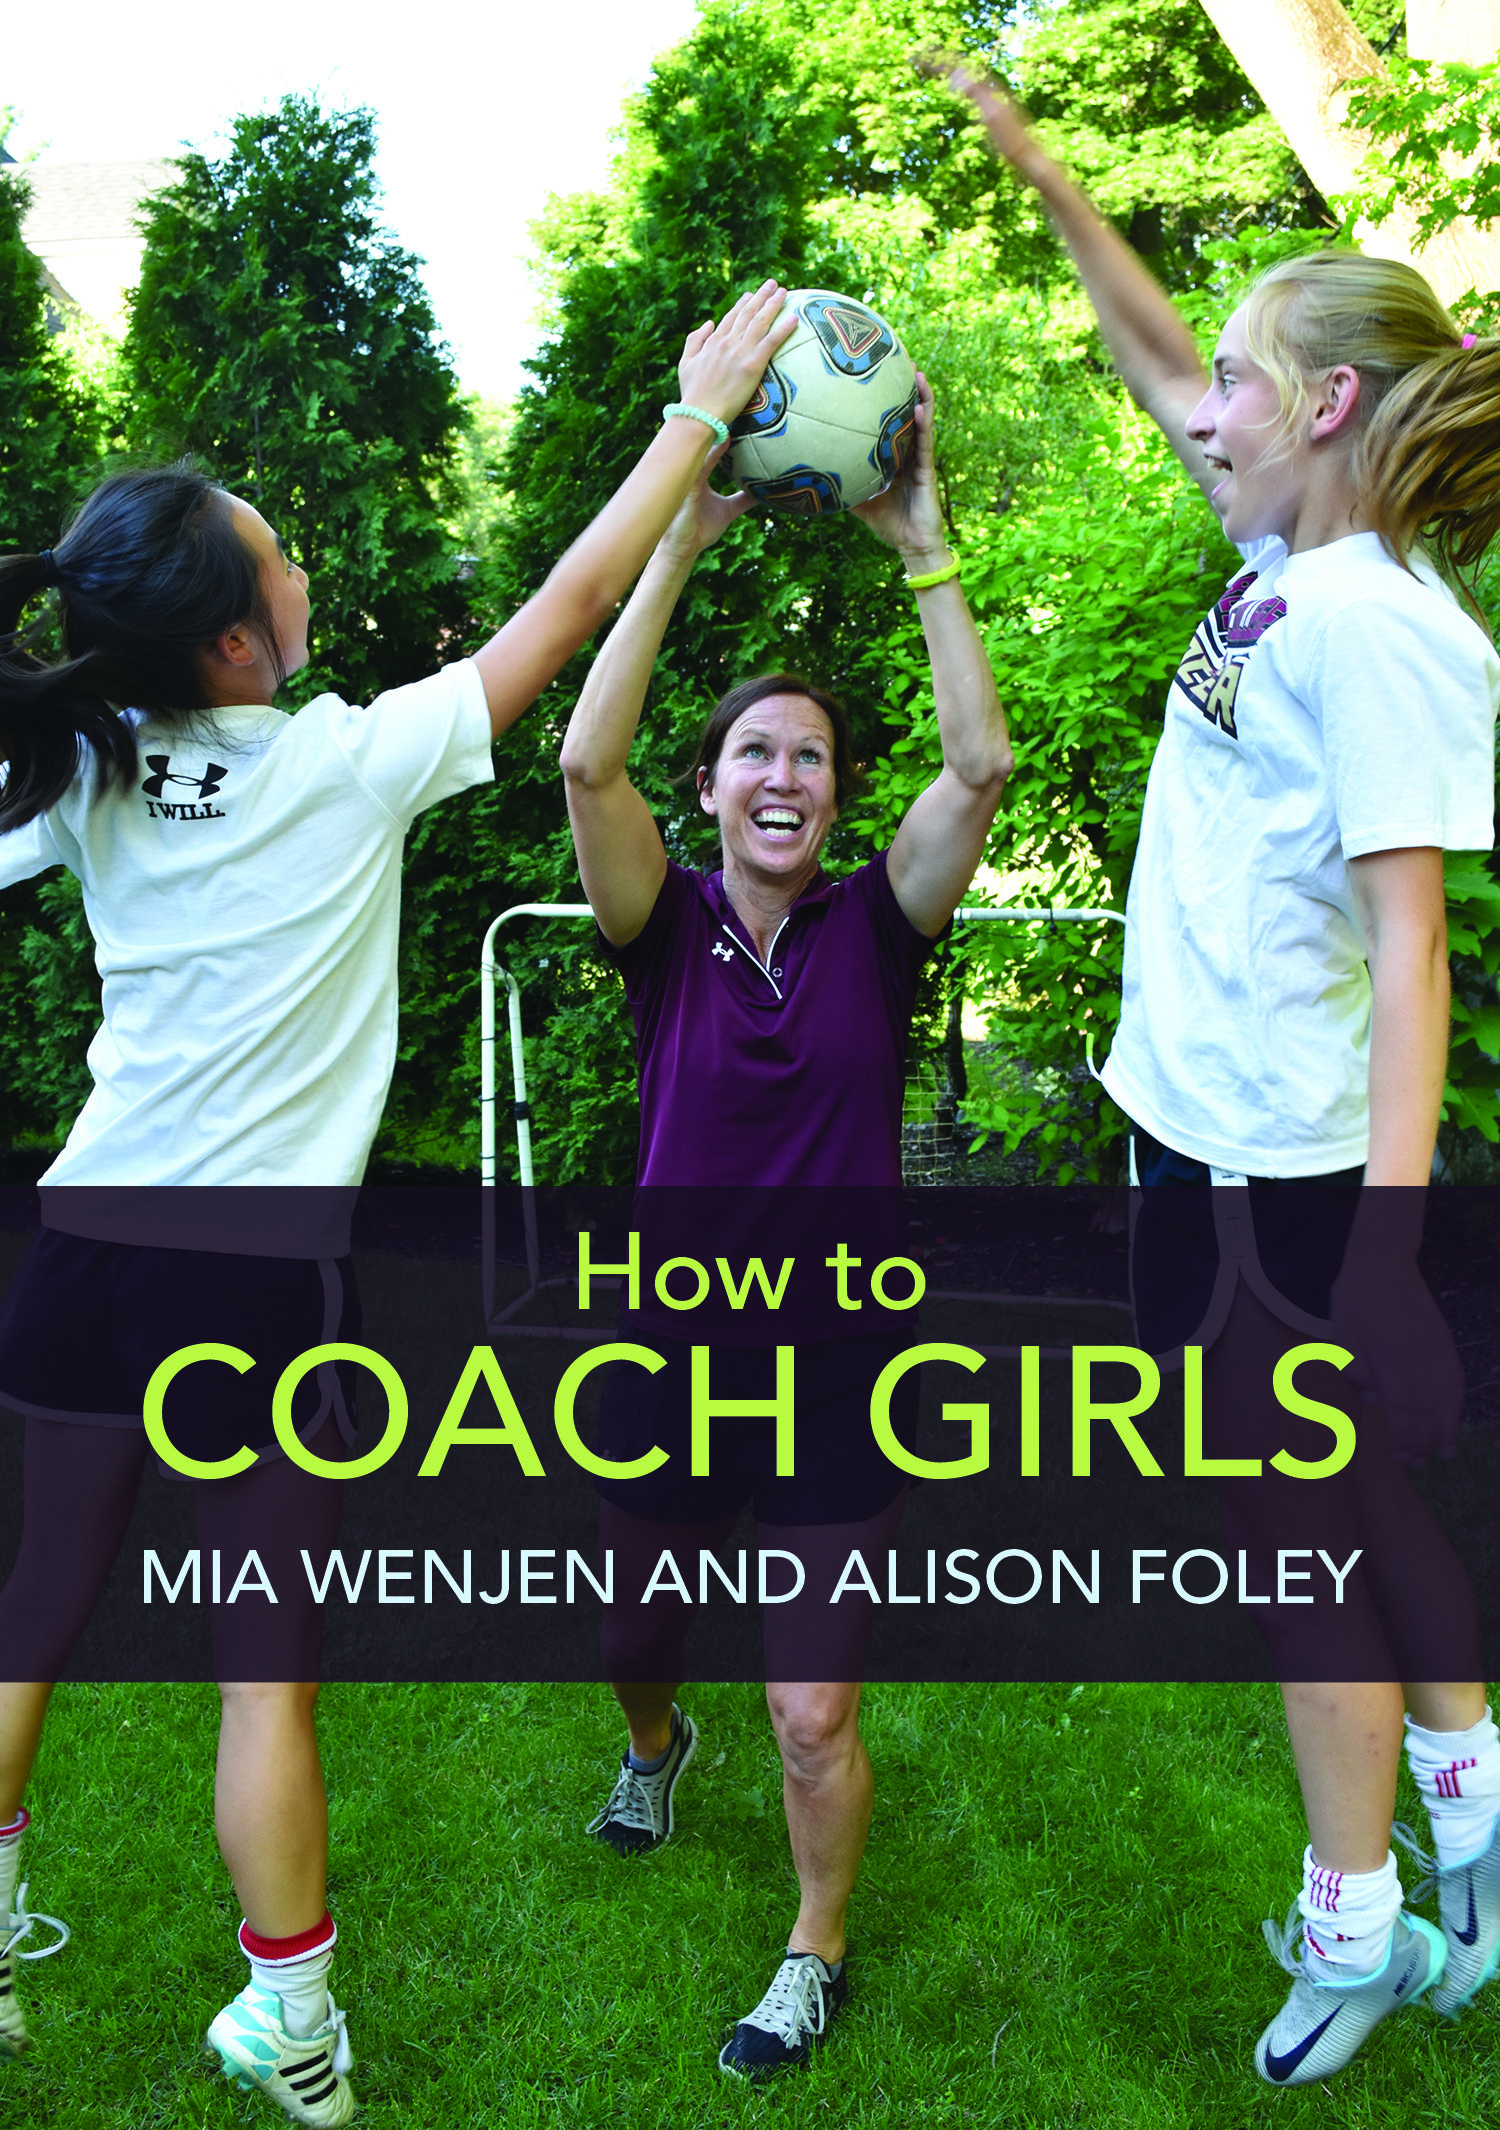 HOW TO COACH GIRLS by Mia Wenjen and Alison Foley  (FREE SHIPPING) 978-1-936426-03-4